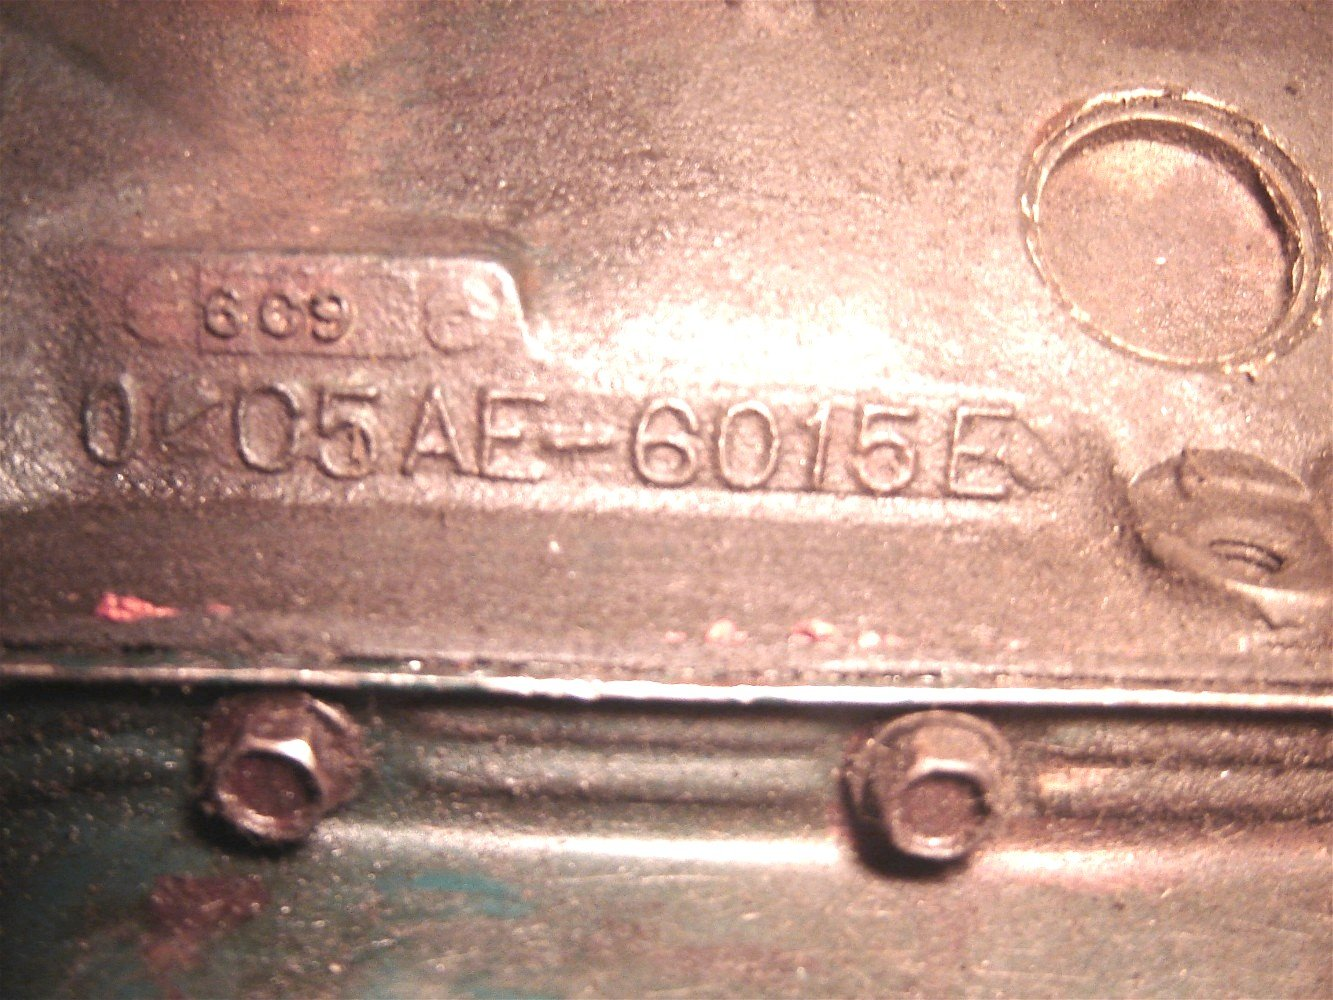 Engine block code for a mustang 90110 006 jpg